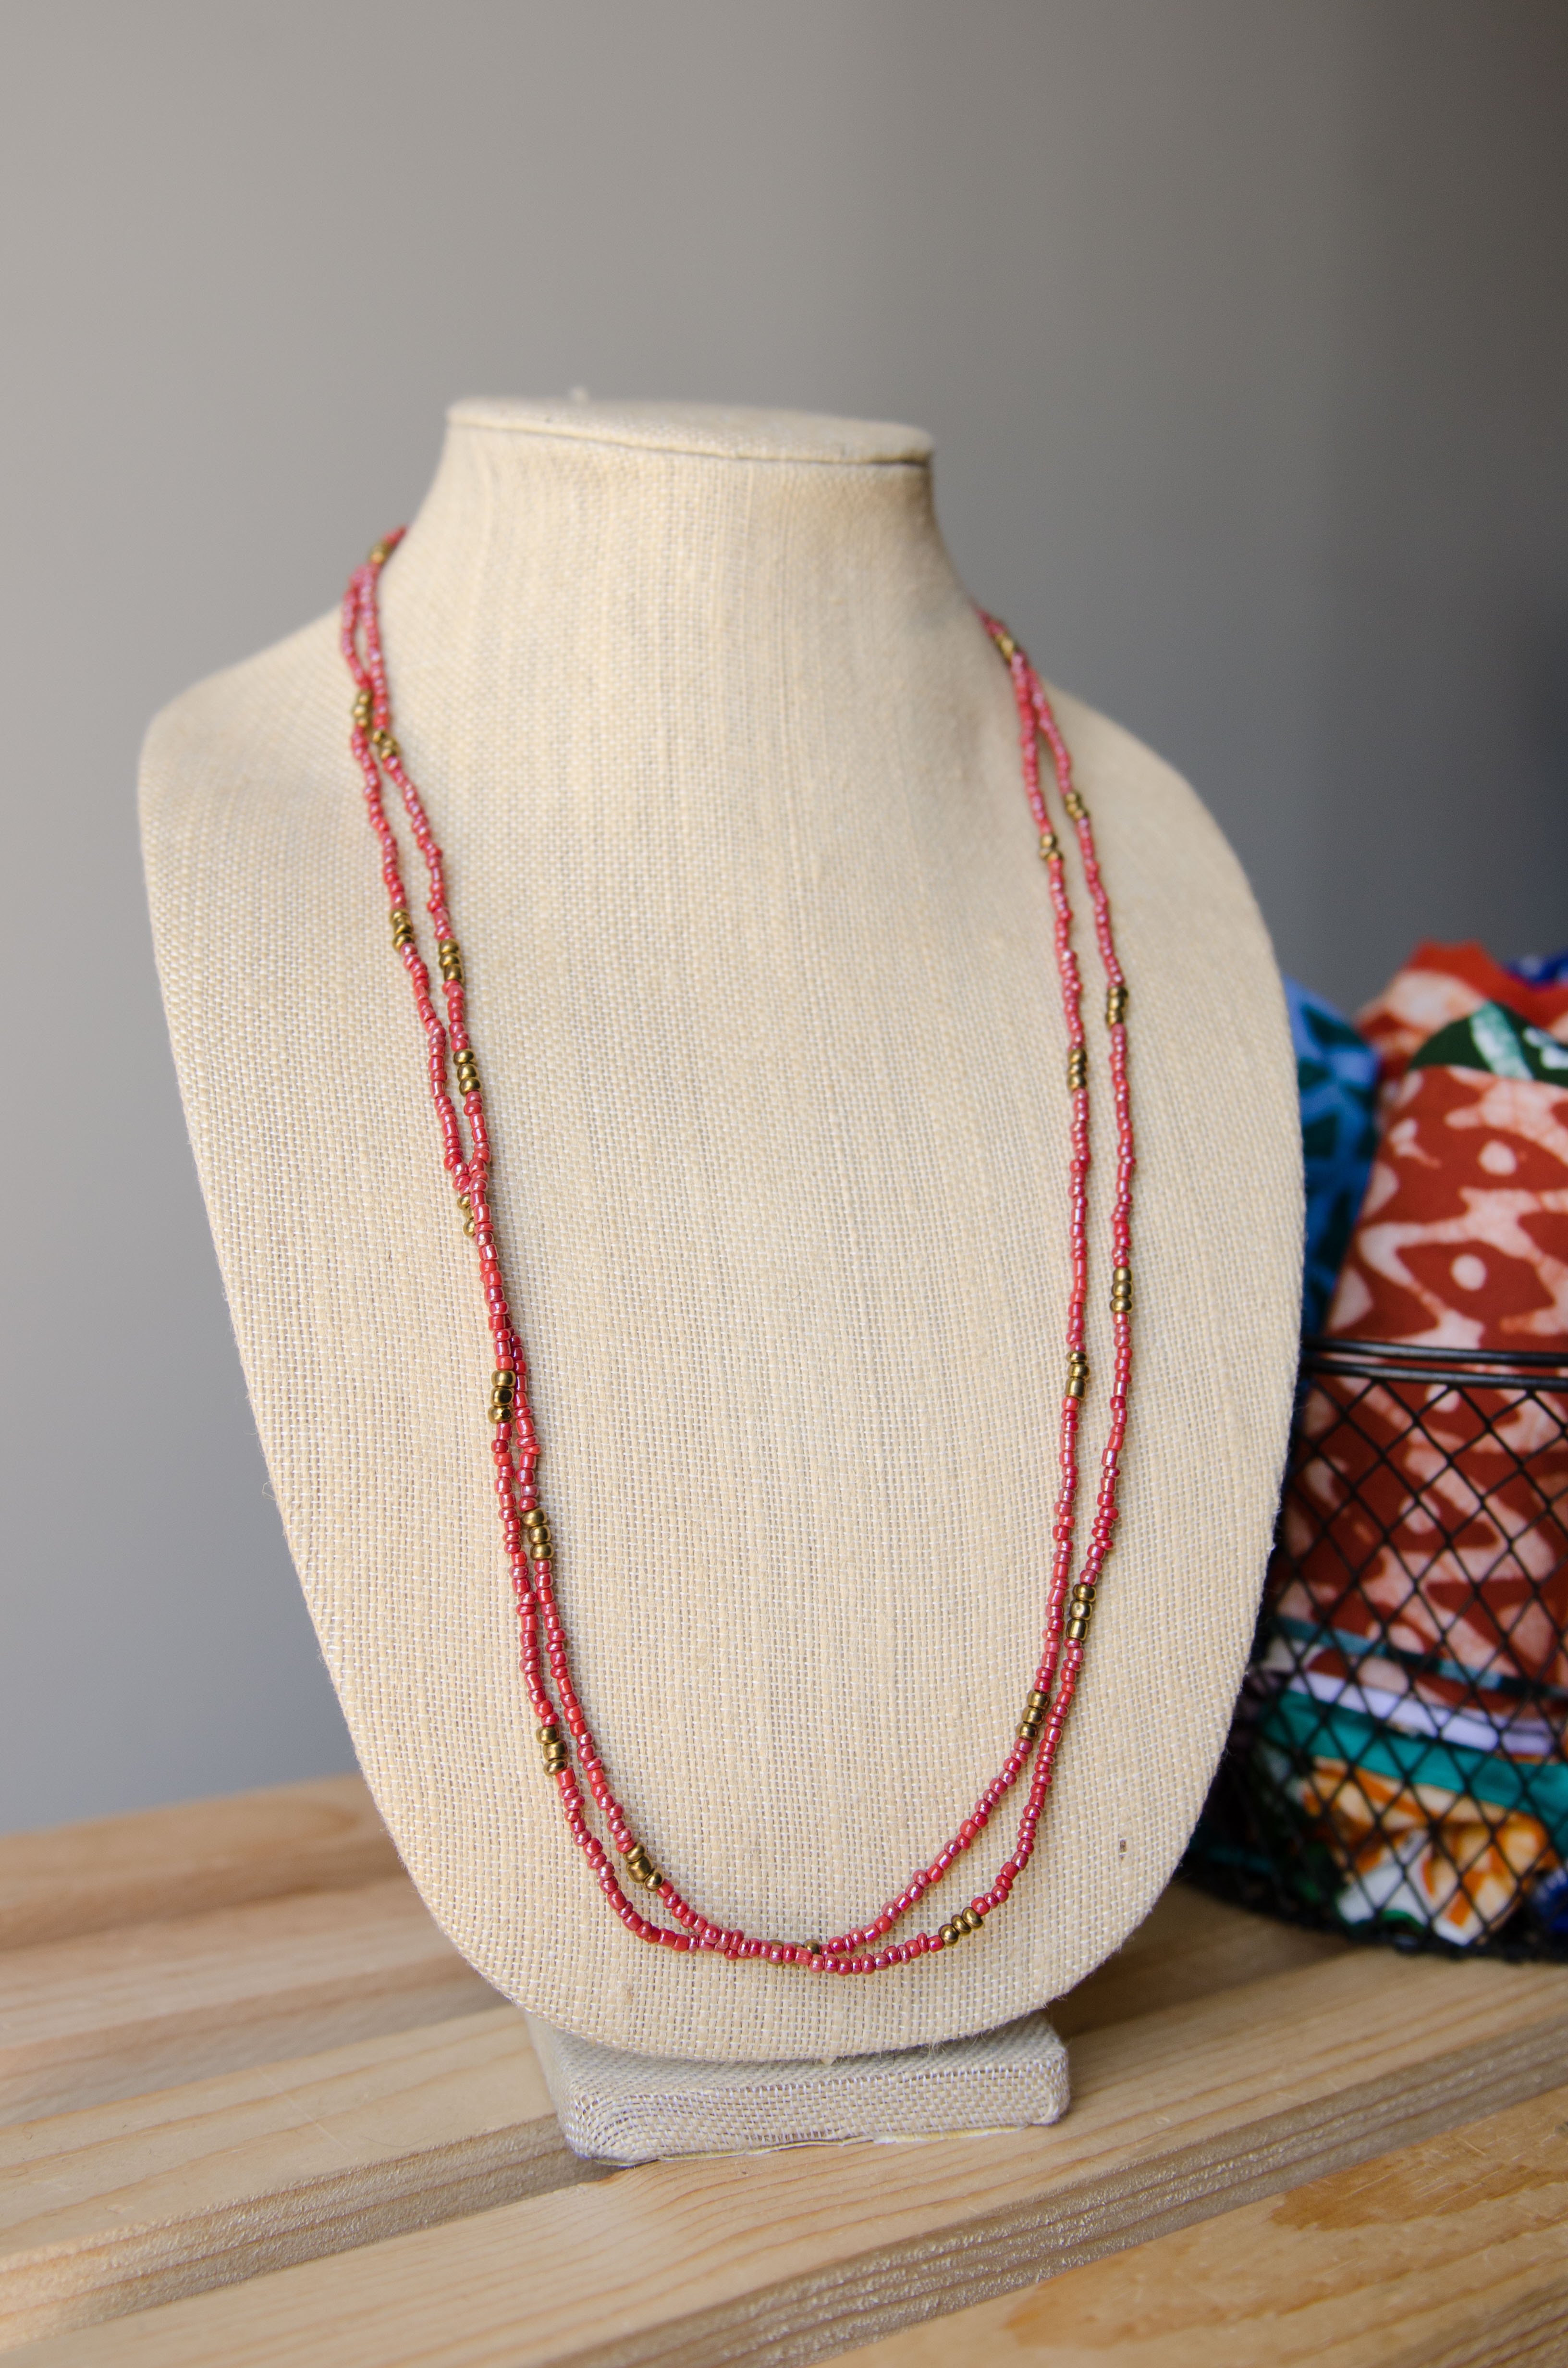 Long Seed Bead Necklace or Wrap Bracelet